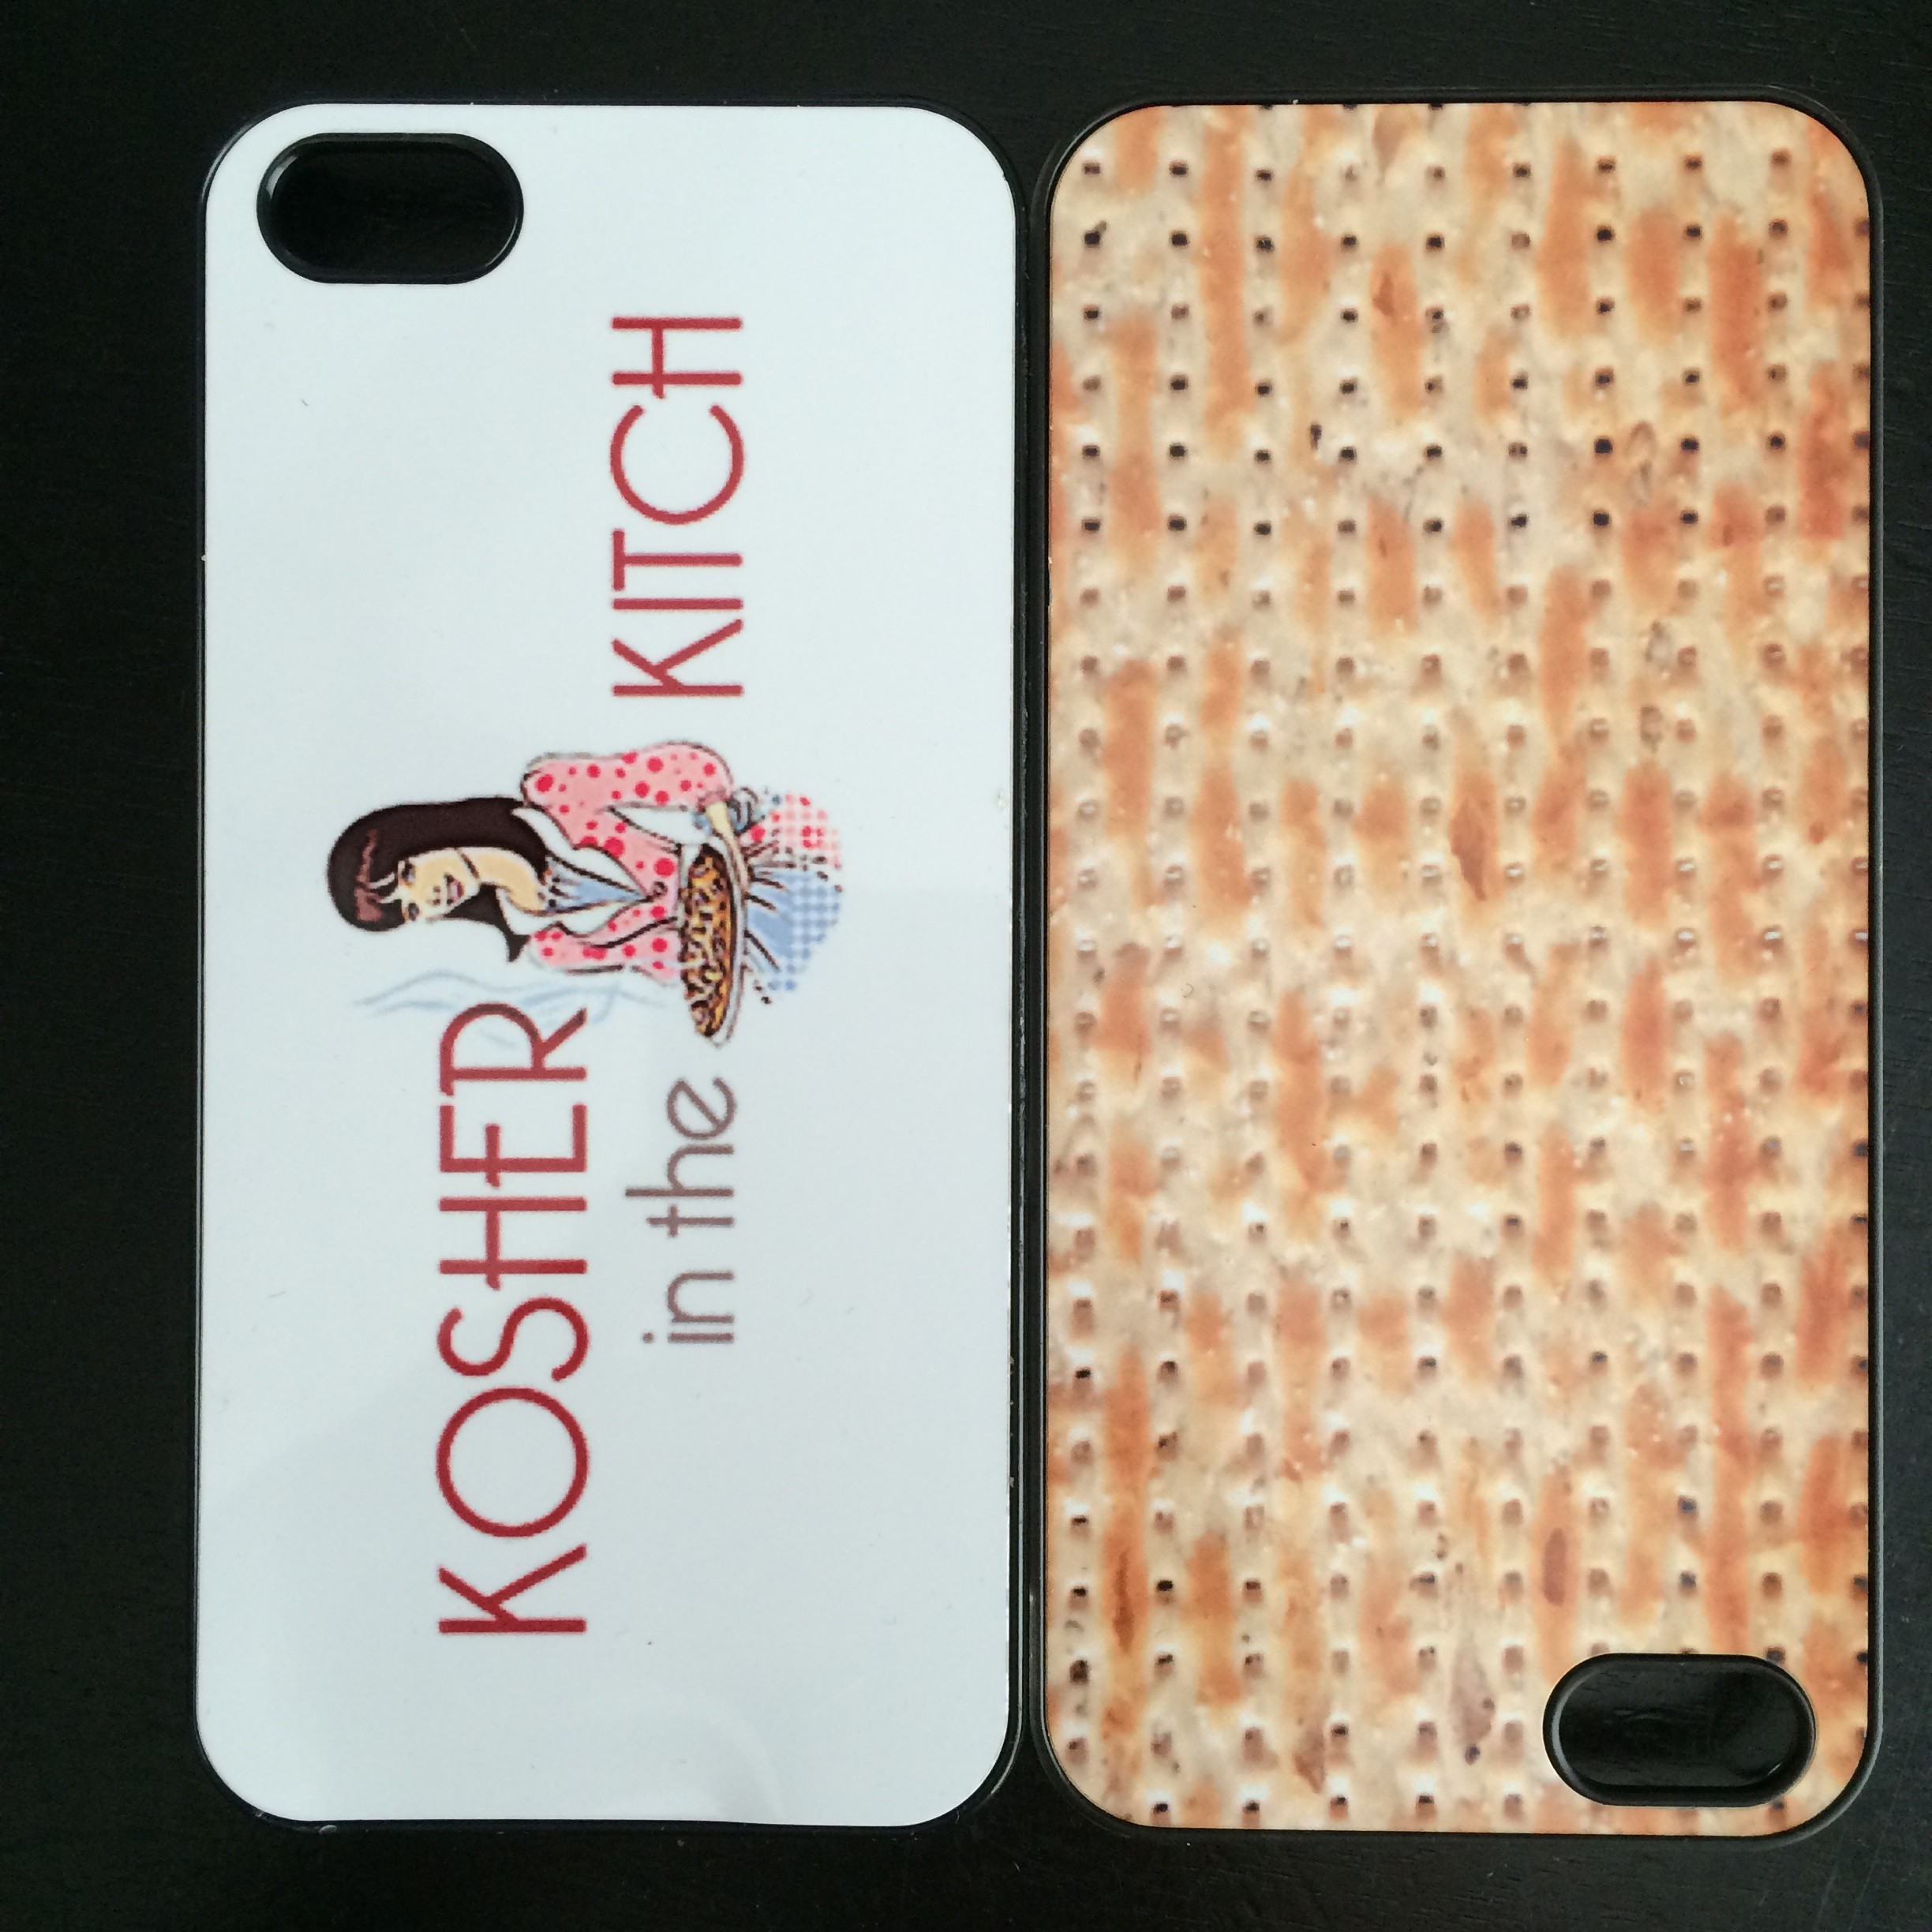 Maztah iPhone Case for Passover